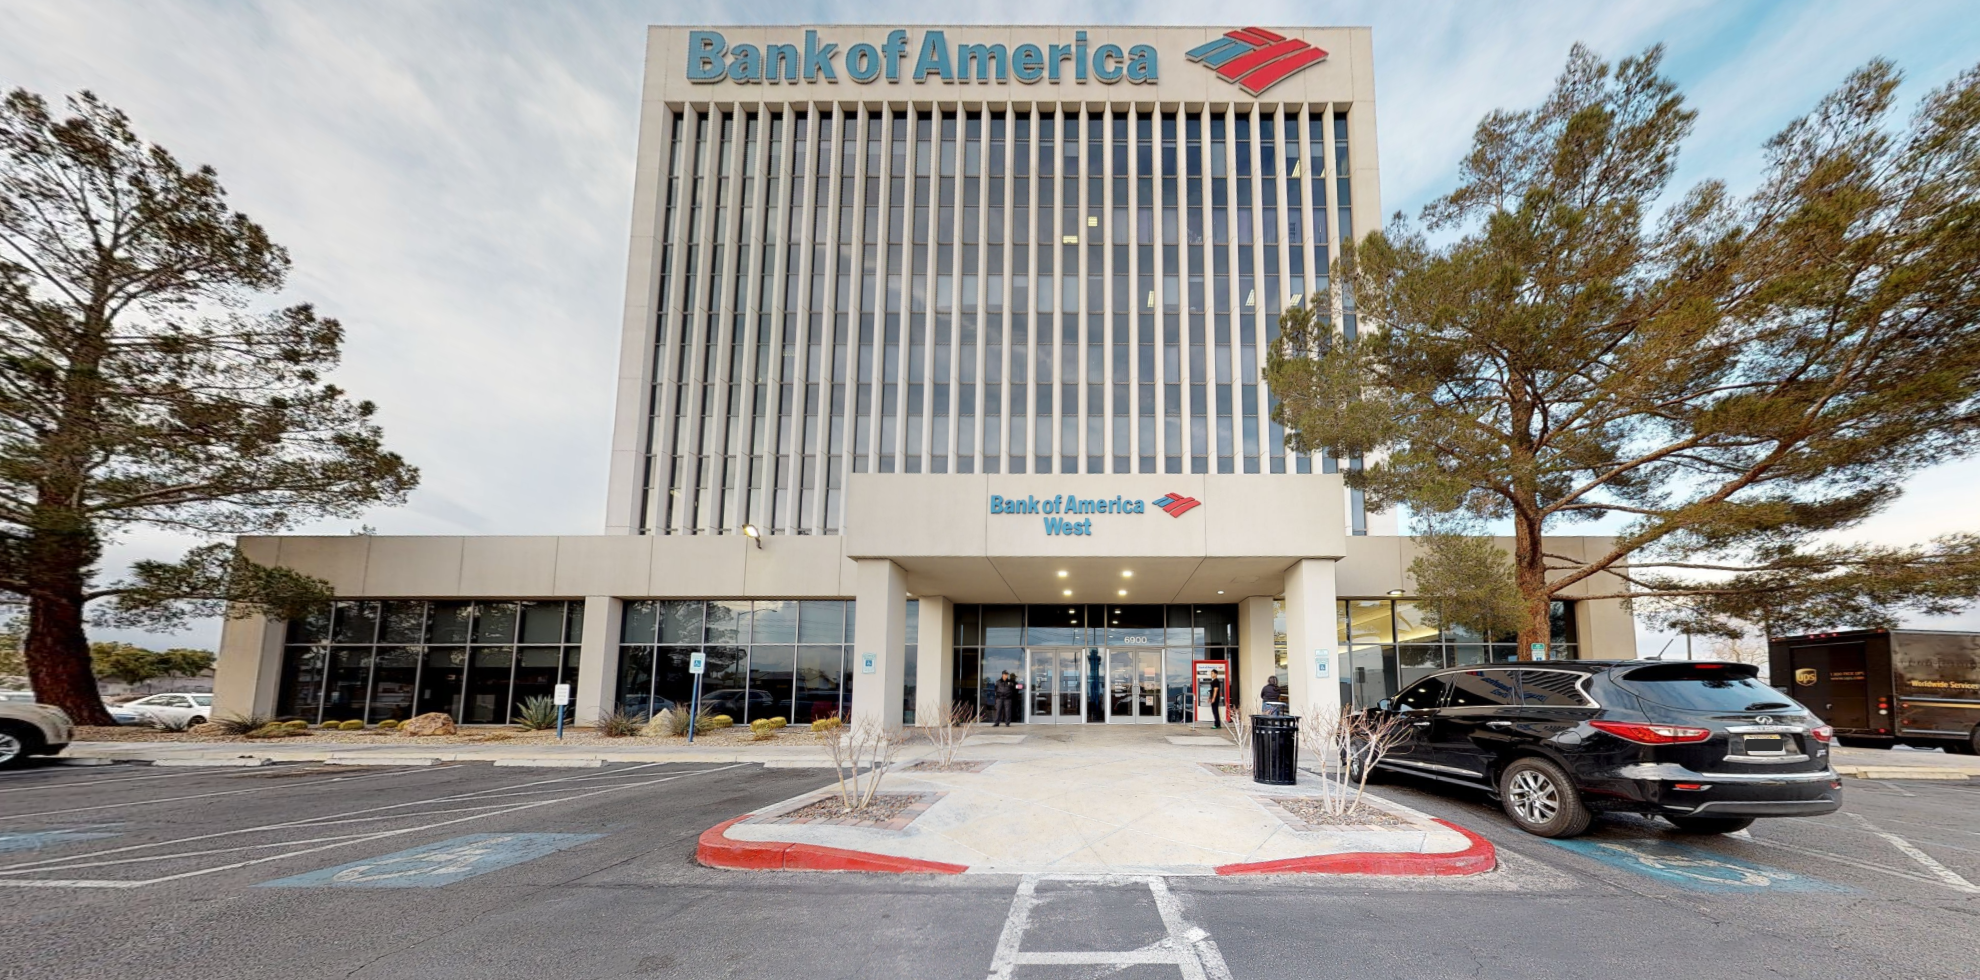 Bank of America financial center with drive-thru ATM | 6900 Westcliff Dr, Las Vegas, NV 89145